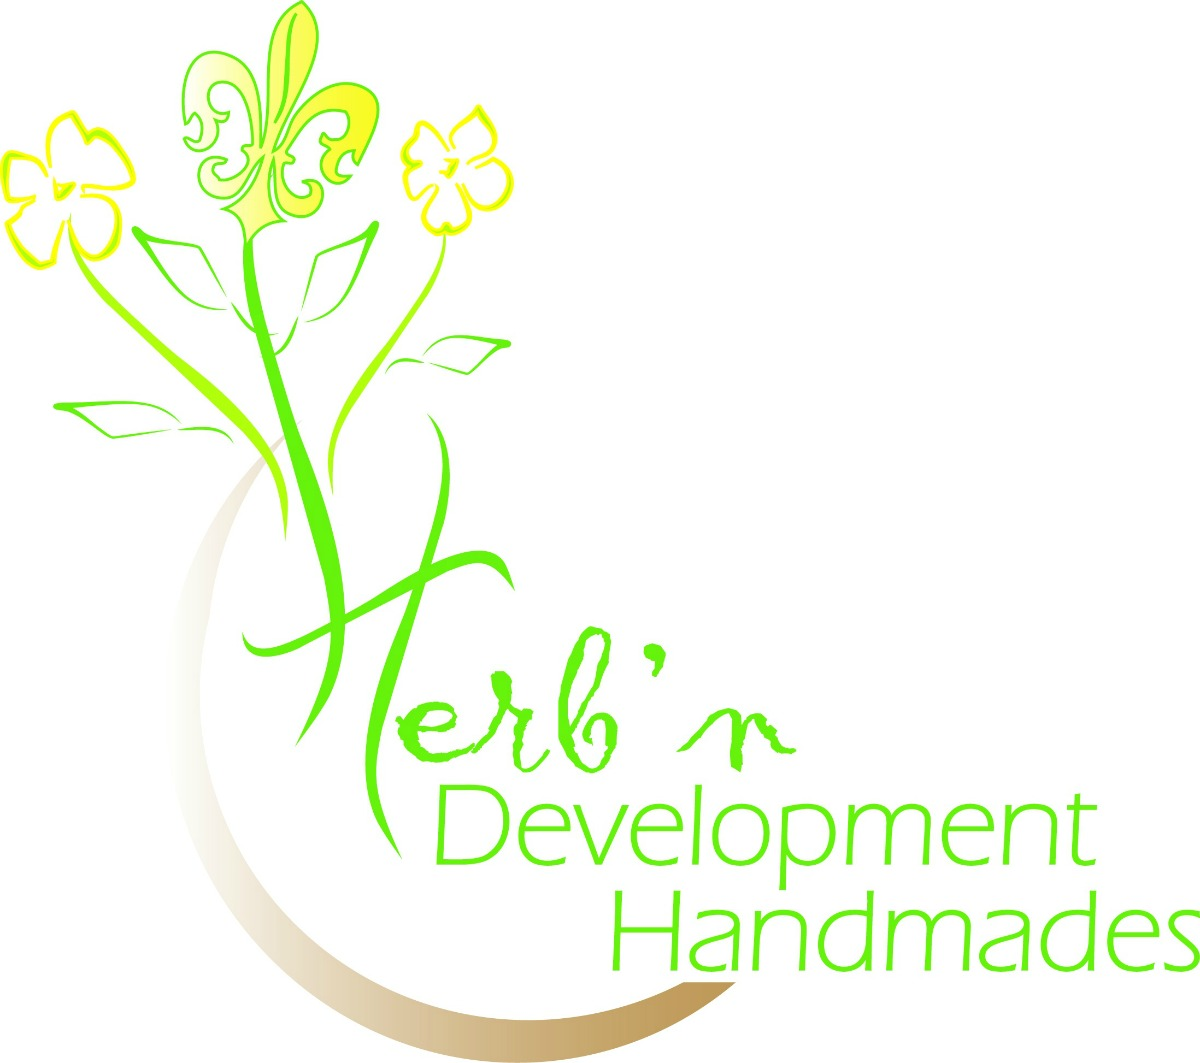 Herb'n Development Handmades